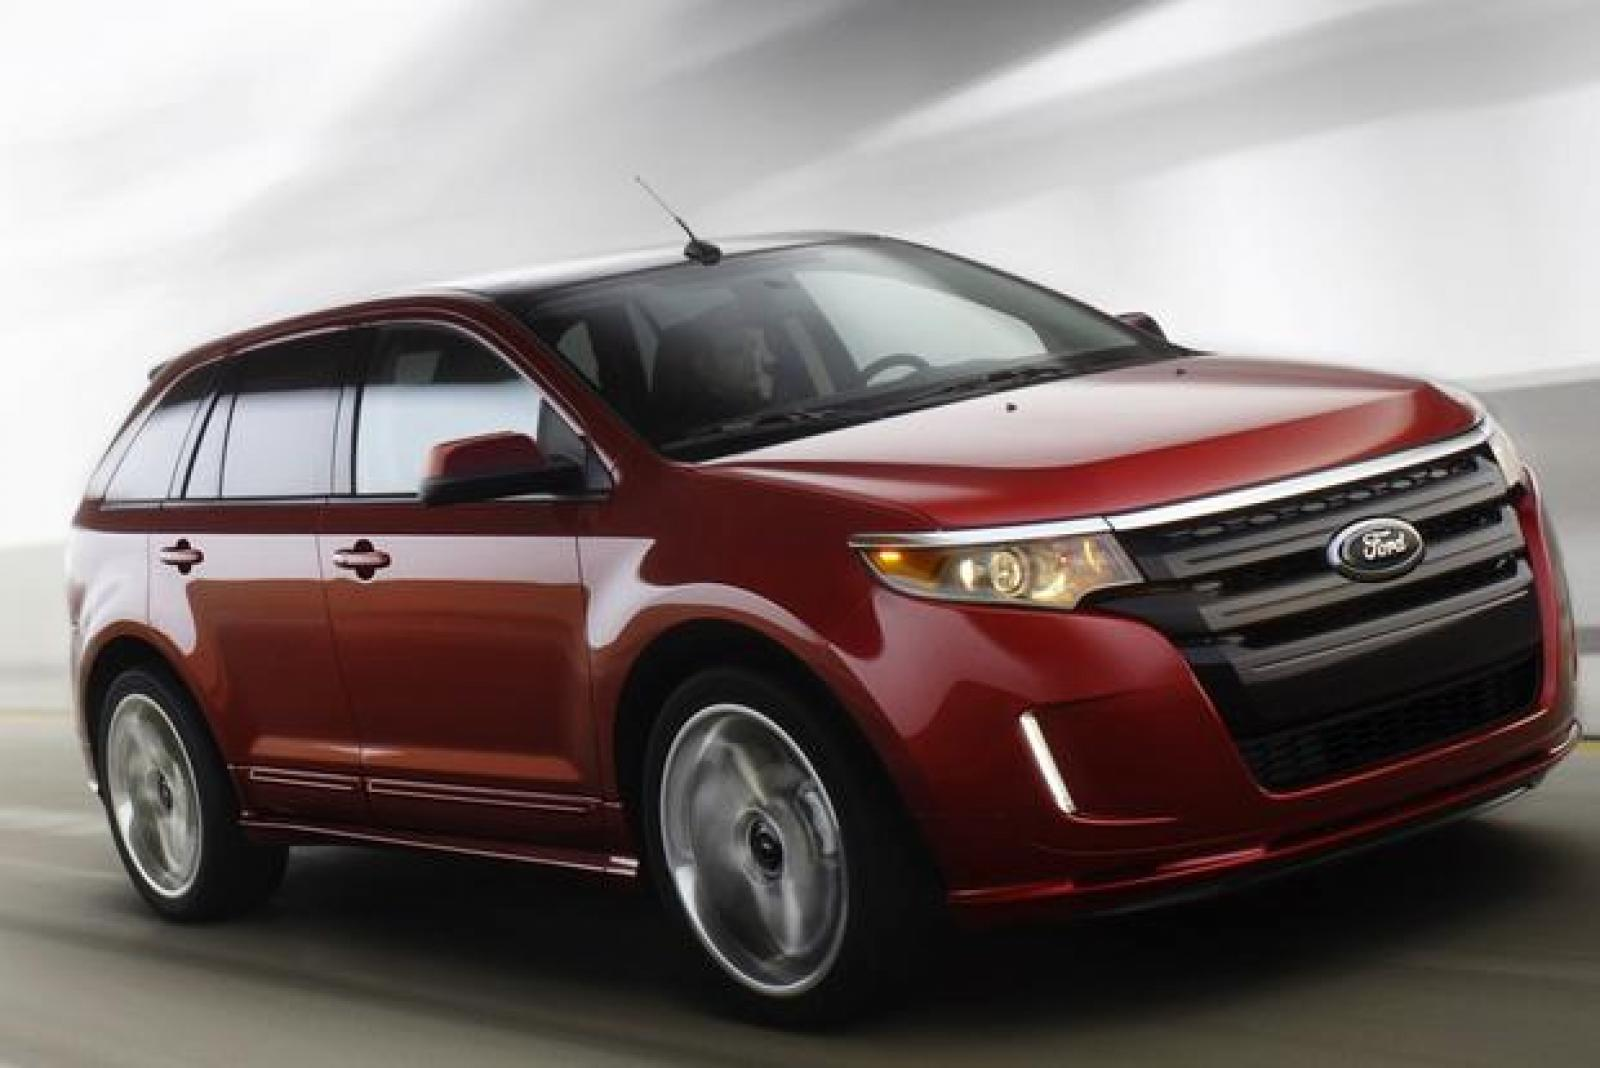 2014 ford edge information and photos zombiedrive. Black Bedroom Furniture Sets. Home Design Ideas